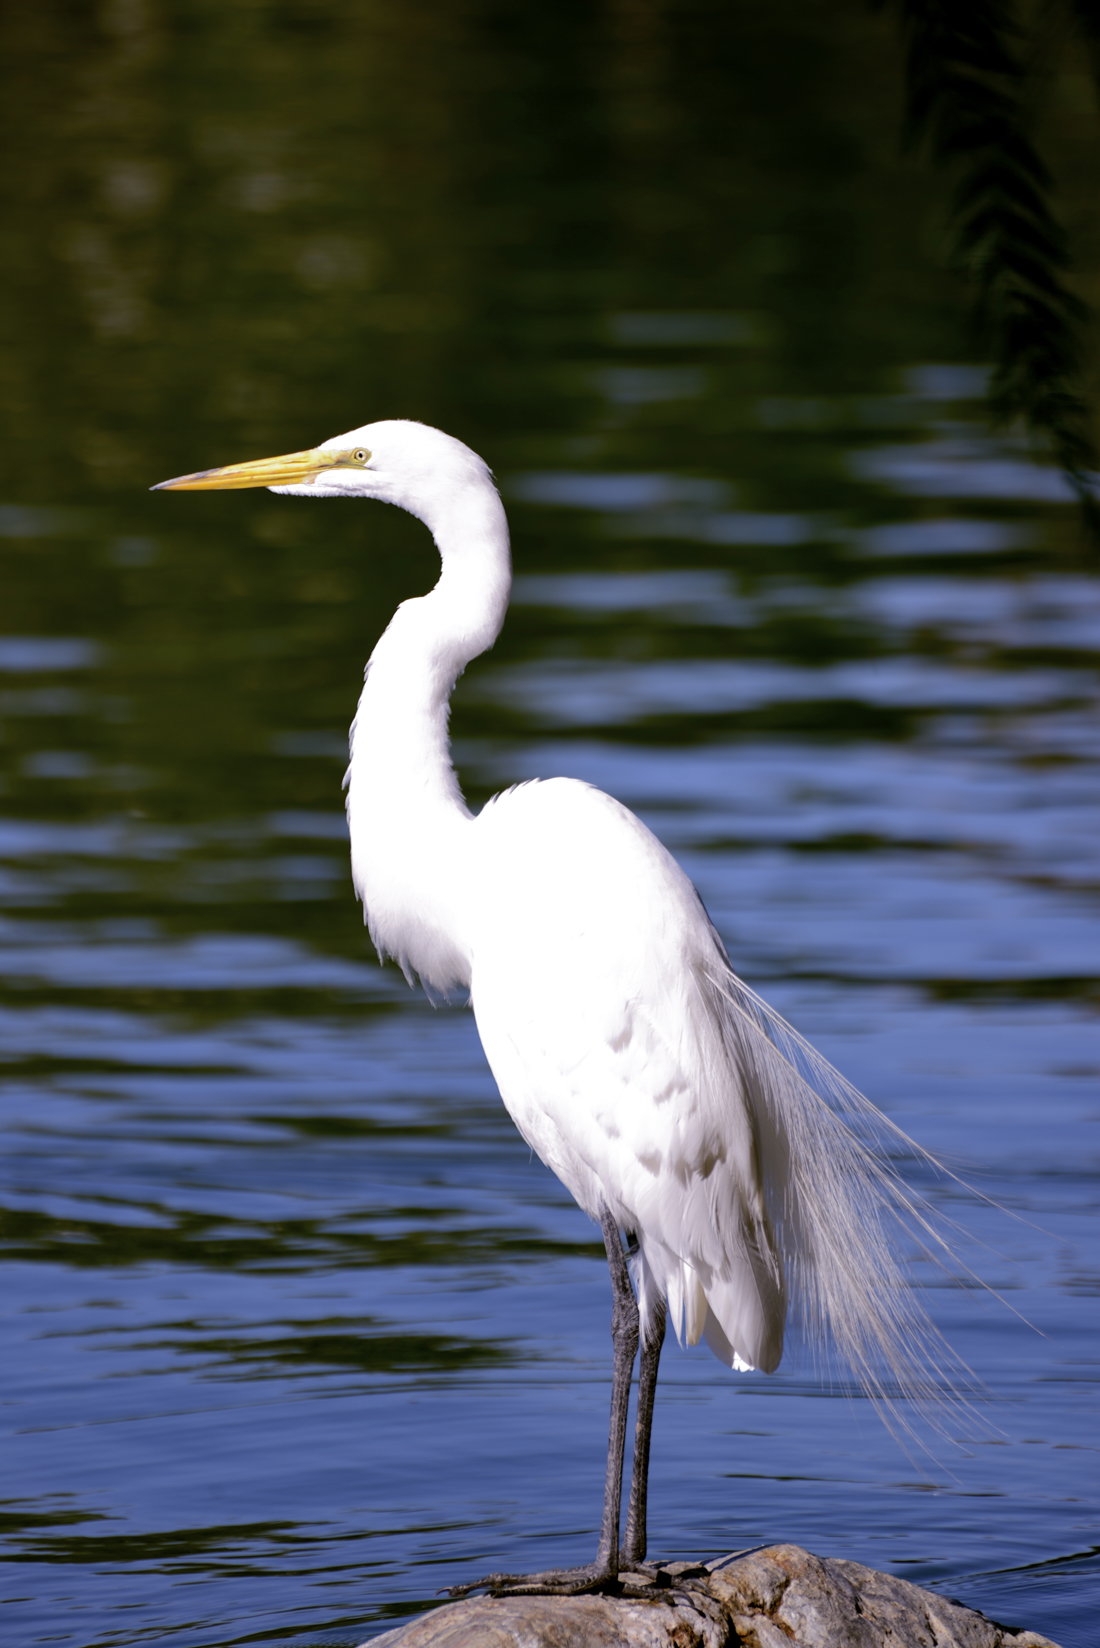 One cattle egret is a pretty bird, but hundreds can be a real nuisance.